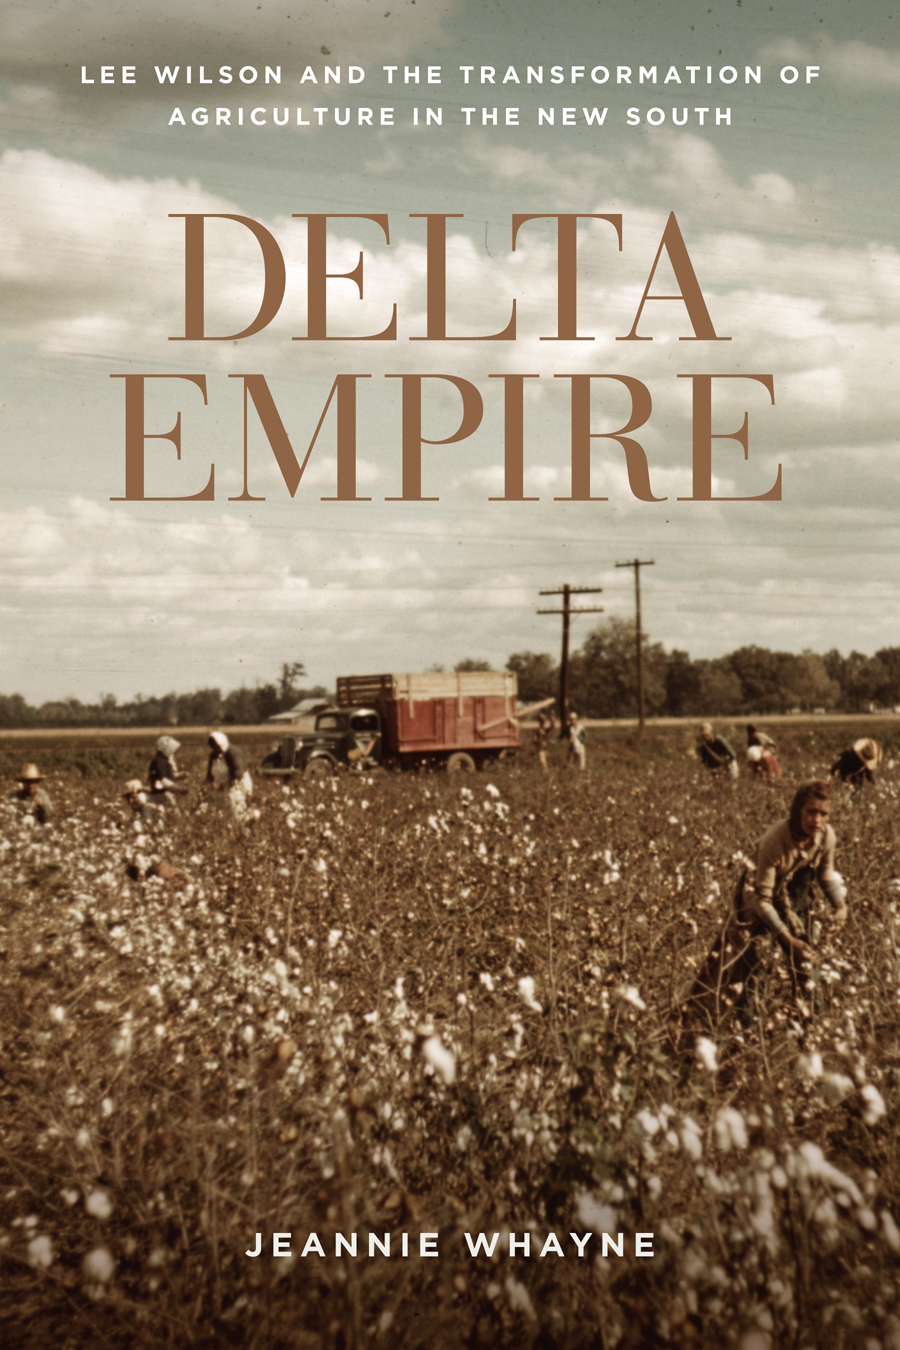 Delta Empire by Jeannie Whayne